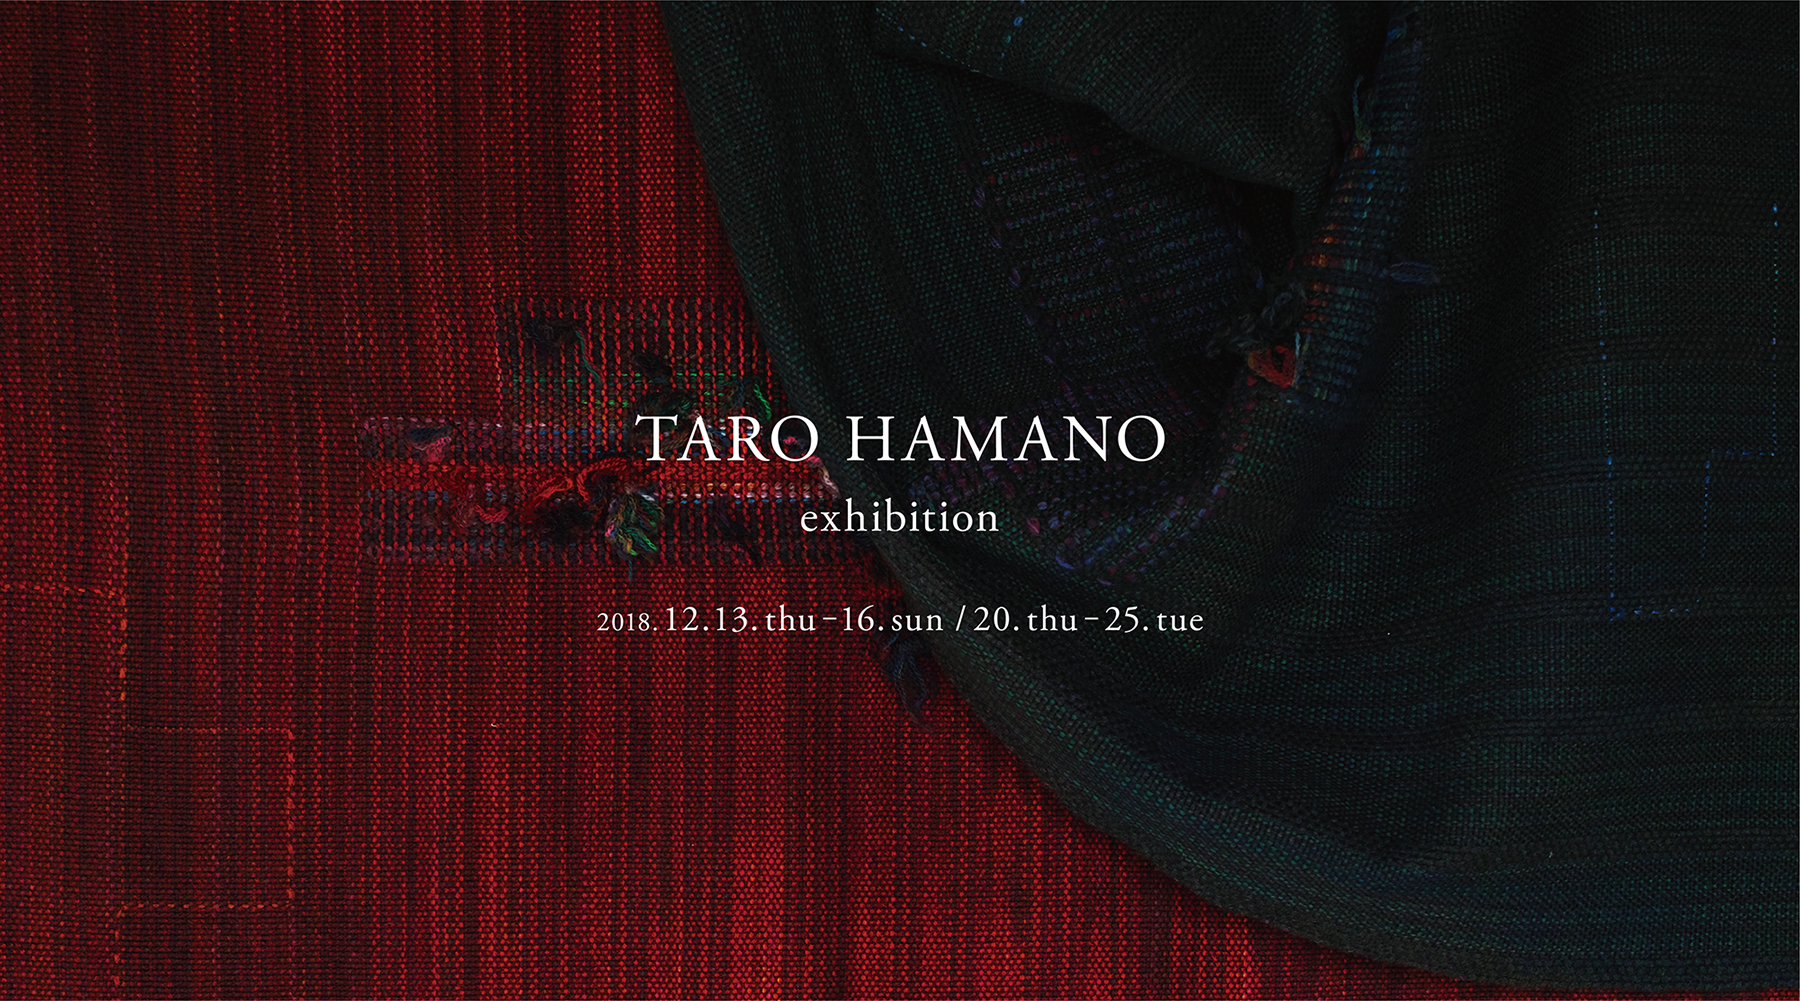 TARO HAMANO exhibition